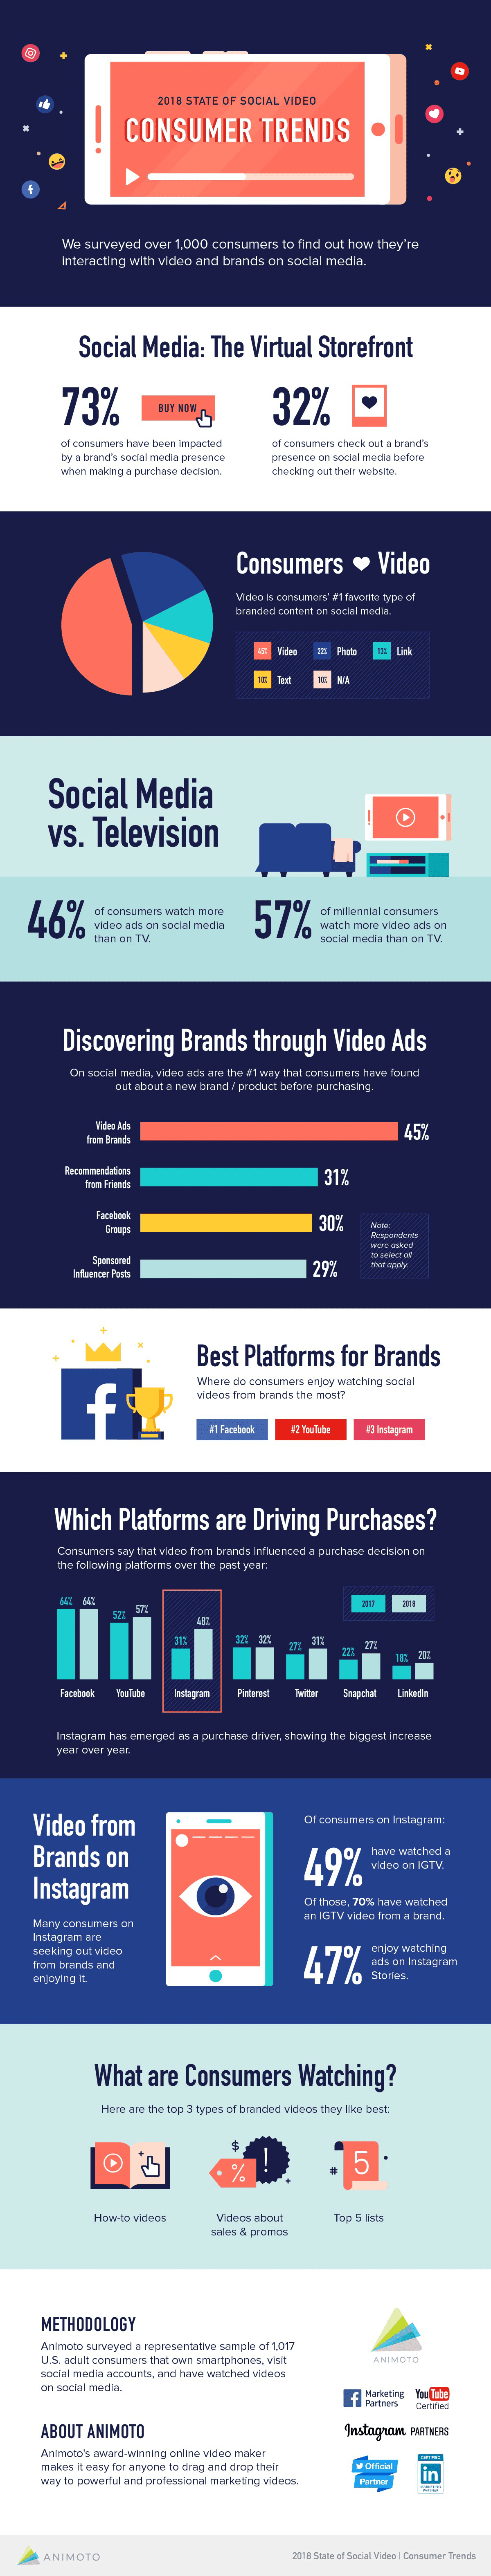 2018 State of Social Media Videos: Consumer Trends (Infographic)